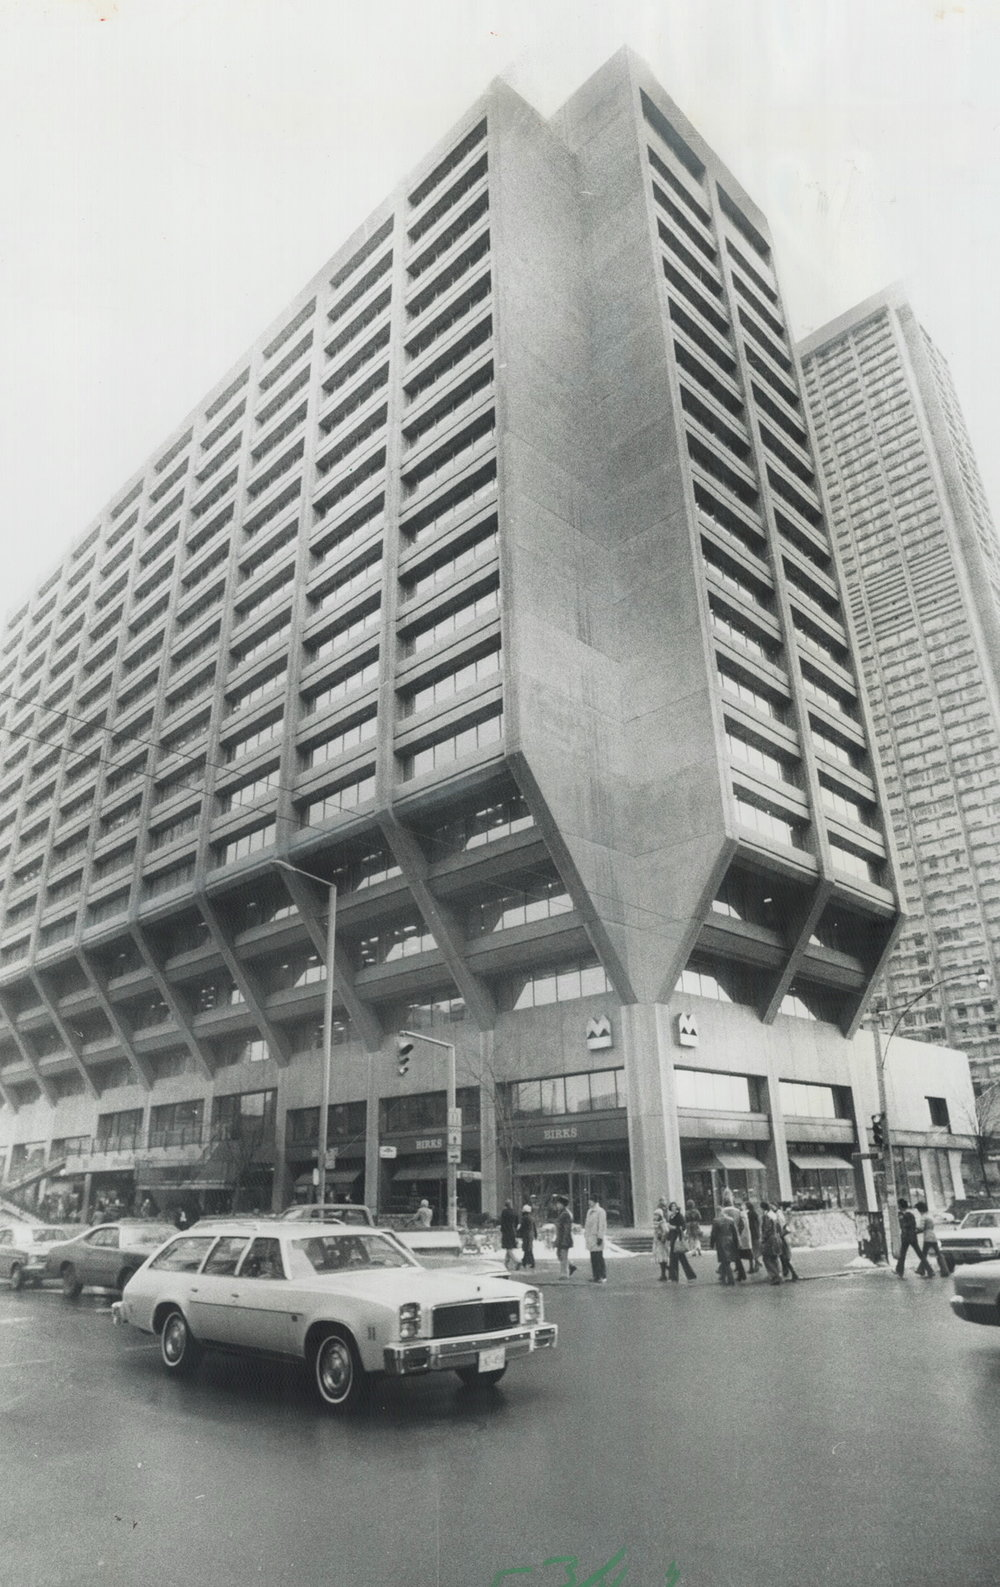 BIRKS BLOOR STREET STORE at Manulife Centre IN 1977 PHOTO: TORONTO STAR PHOTO ARCHIVE